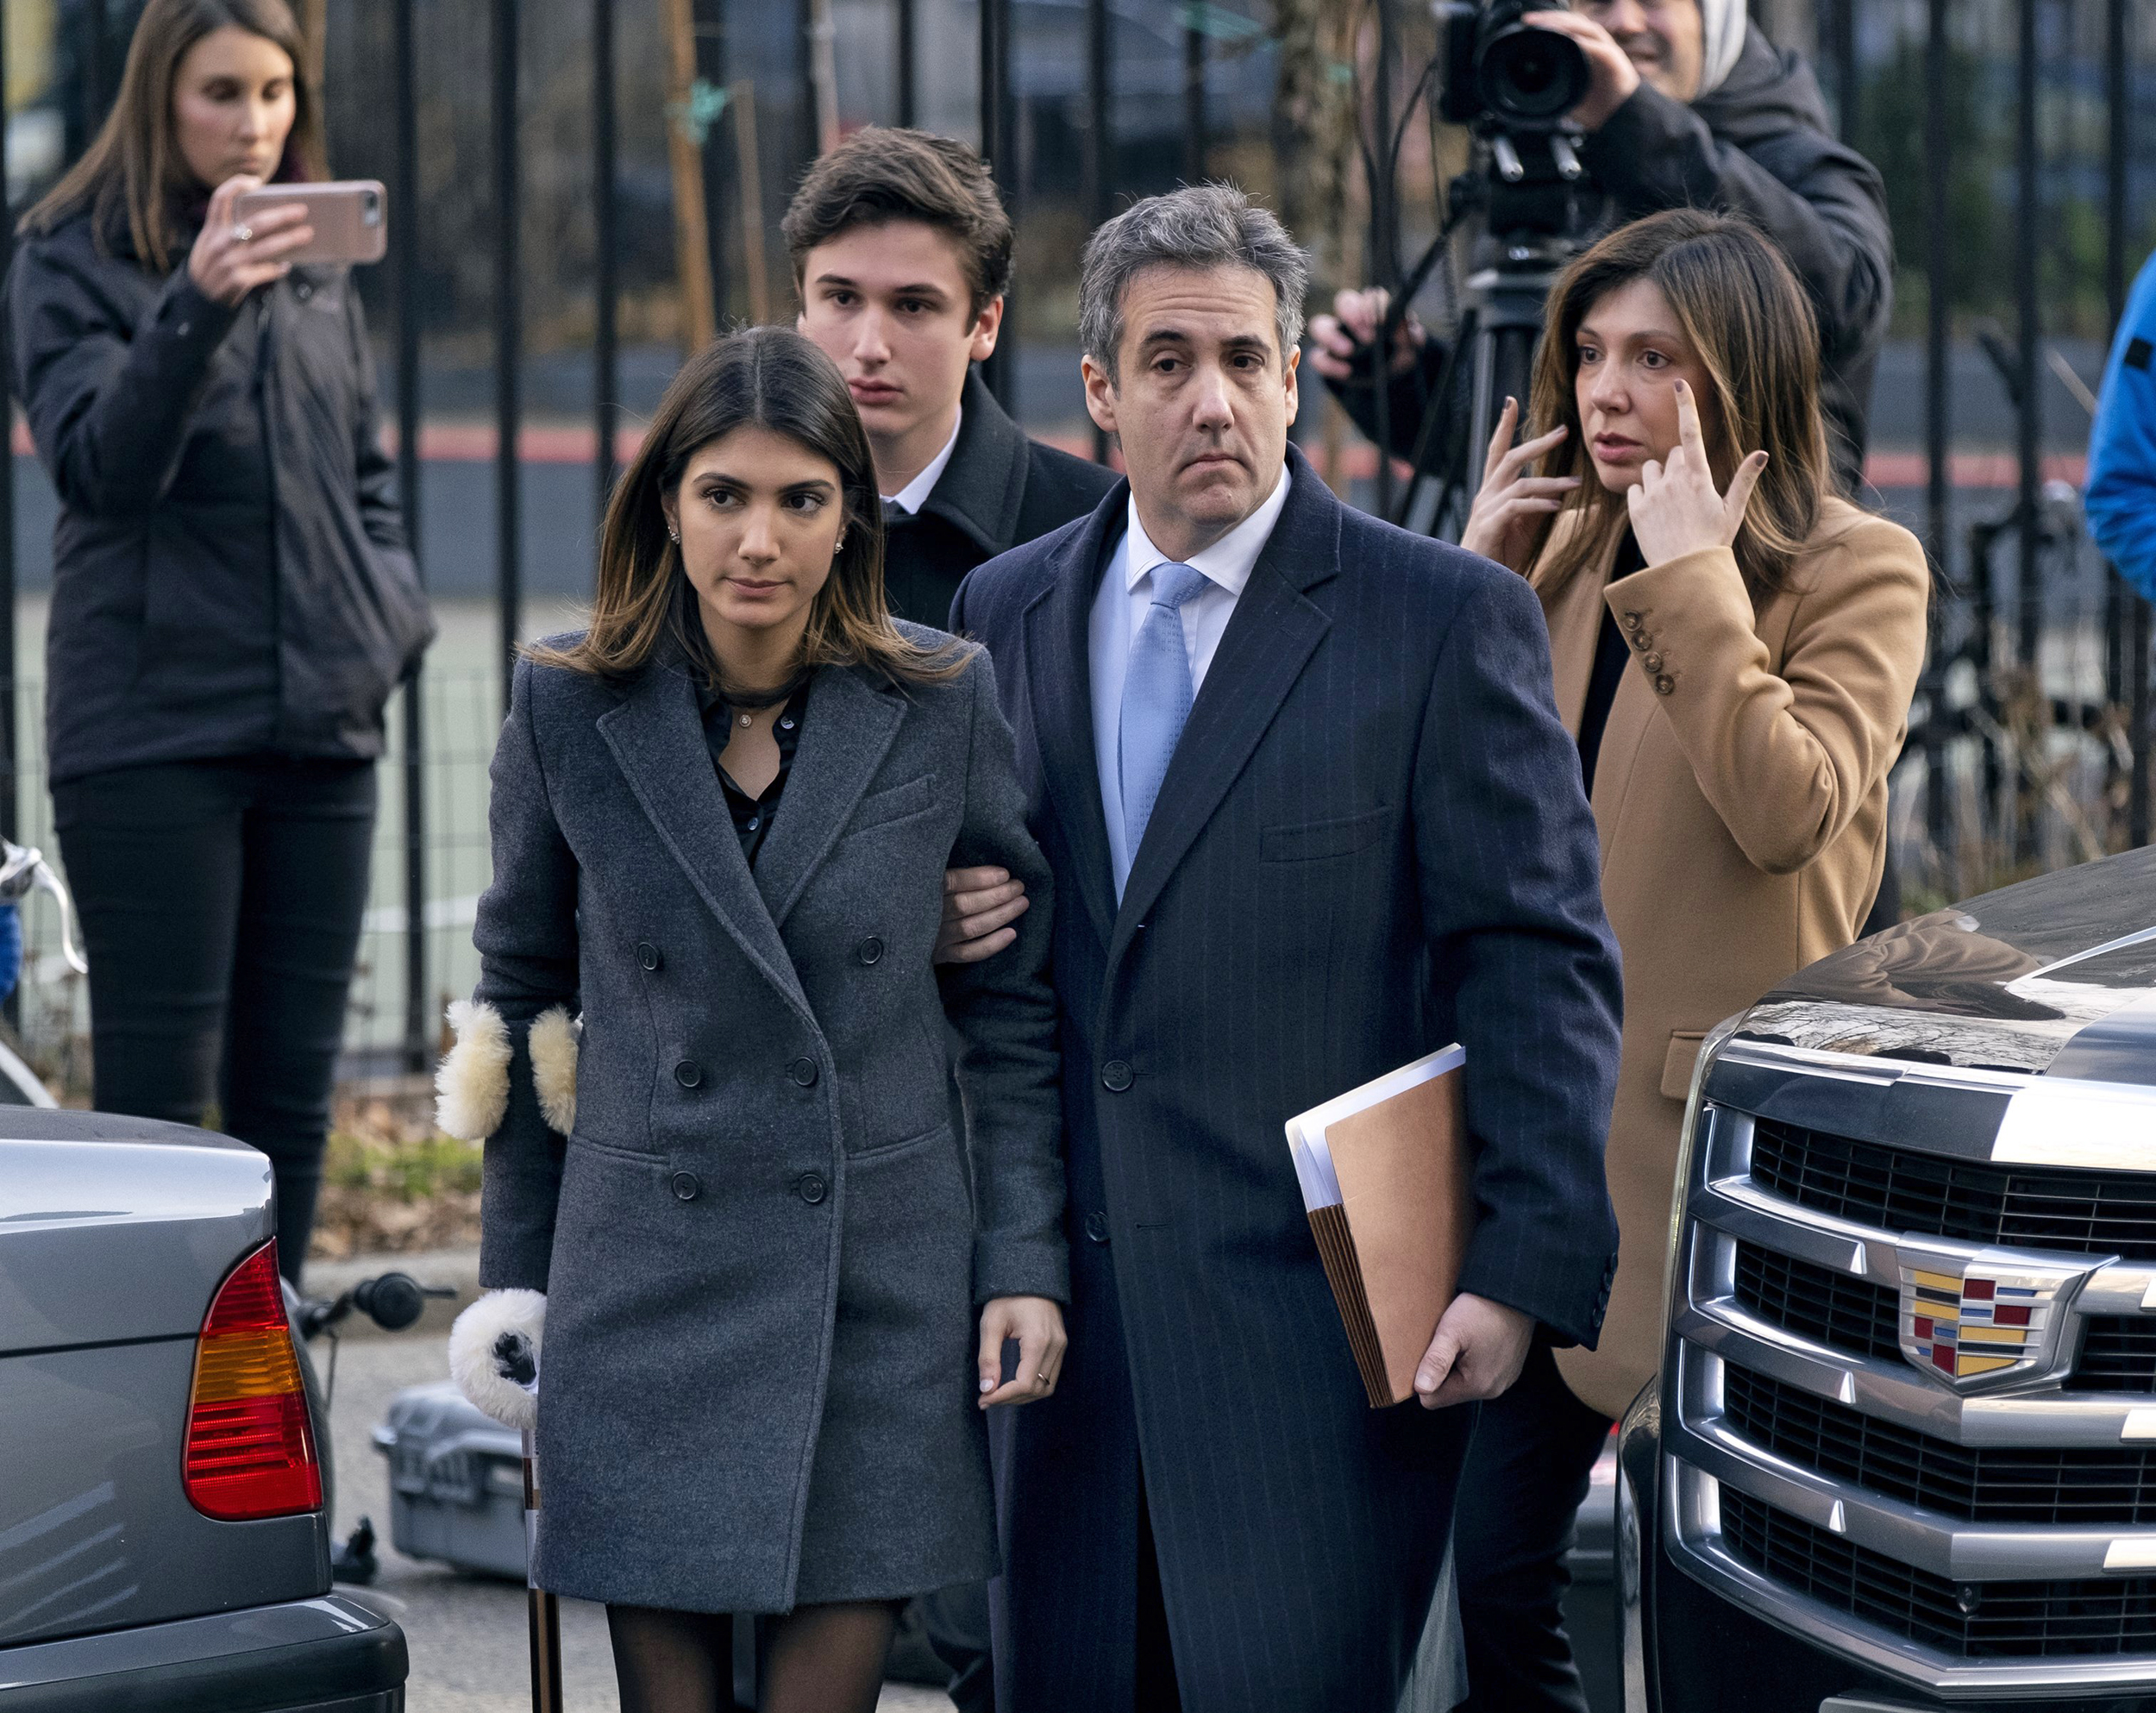 Michael Cohen gets 3 years, says Trump's 'dirty deeds' led